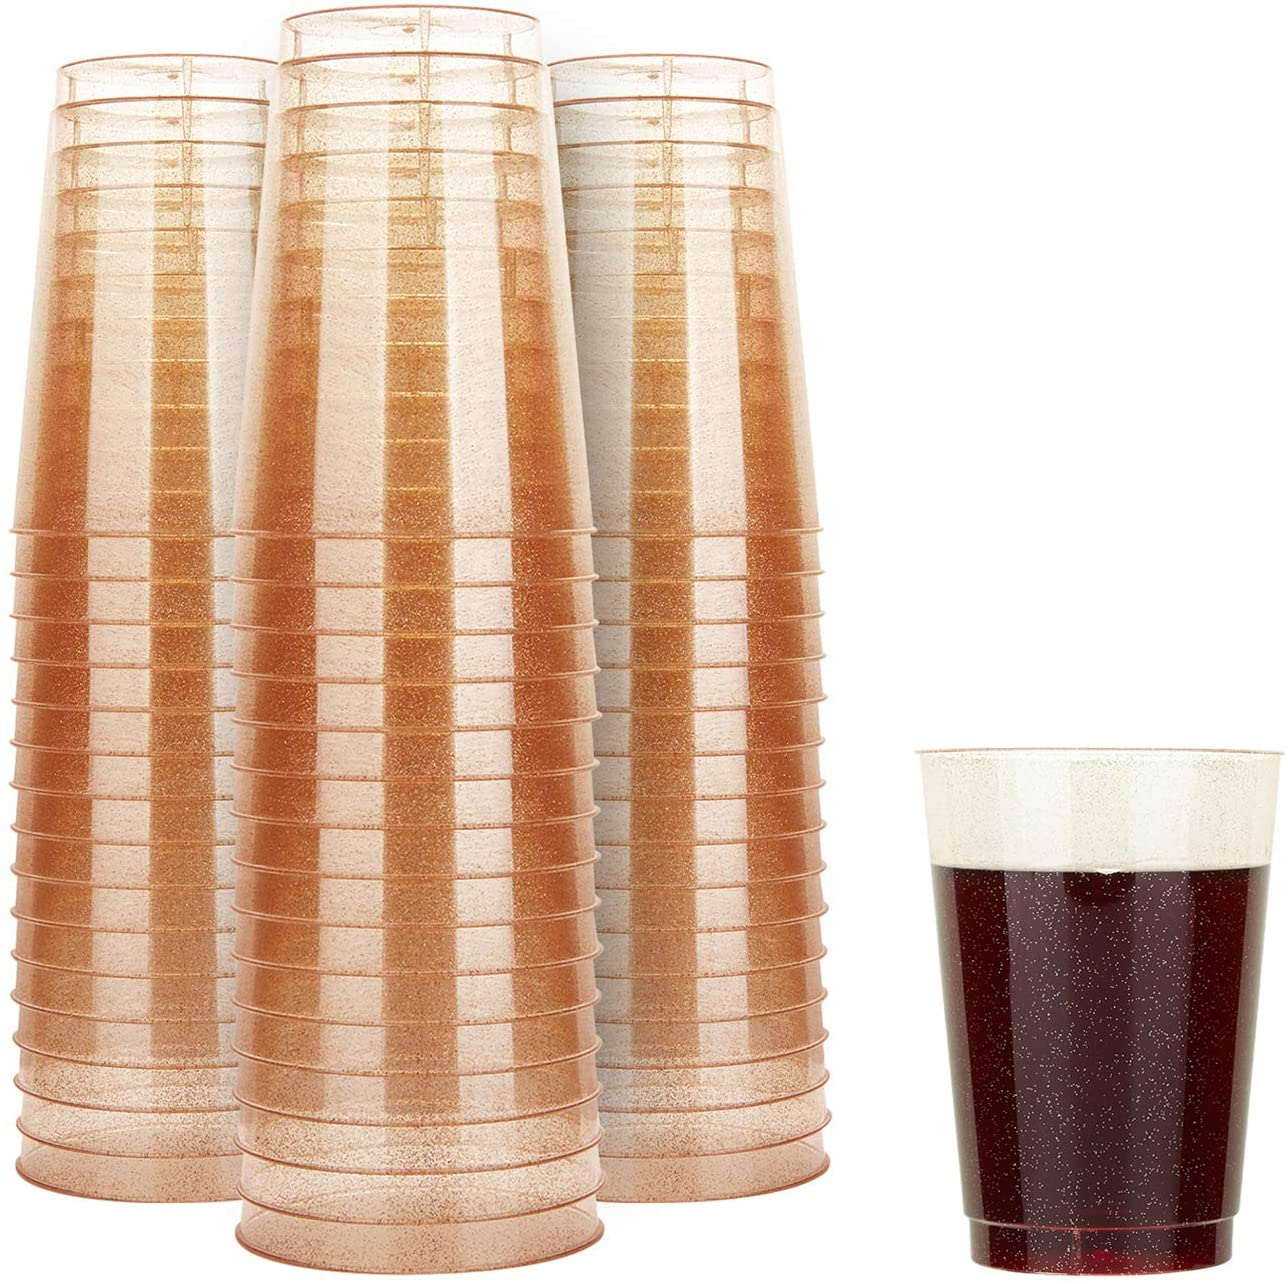 TOROTON 50 Glitter Plastic Cups, 12oz Disposable Clear Party Cups, Hard Plastic Drinking Cups for Wedding Birthday Anniversaries - Rose Gold